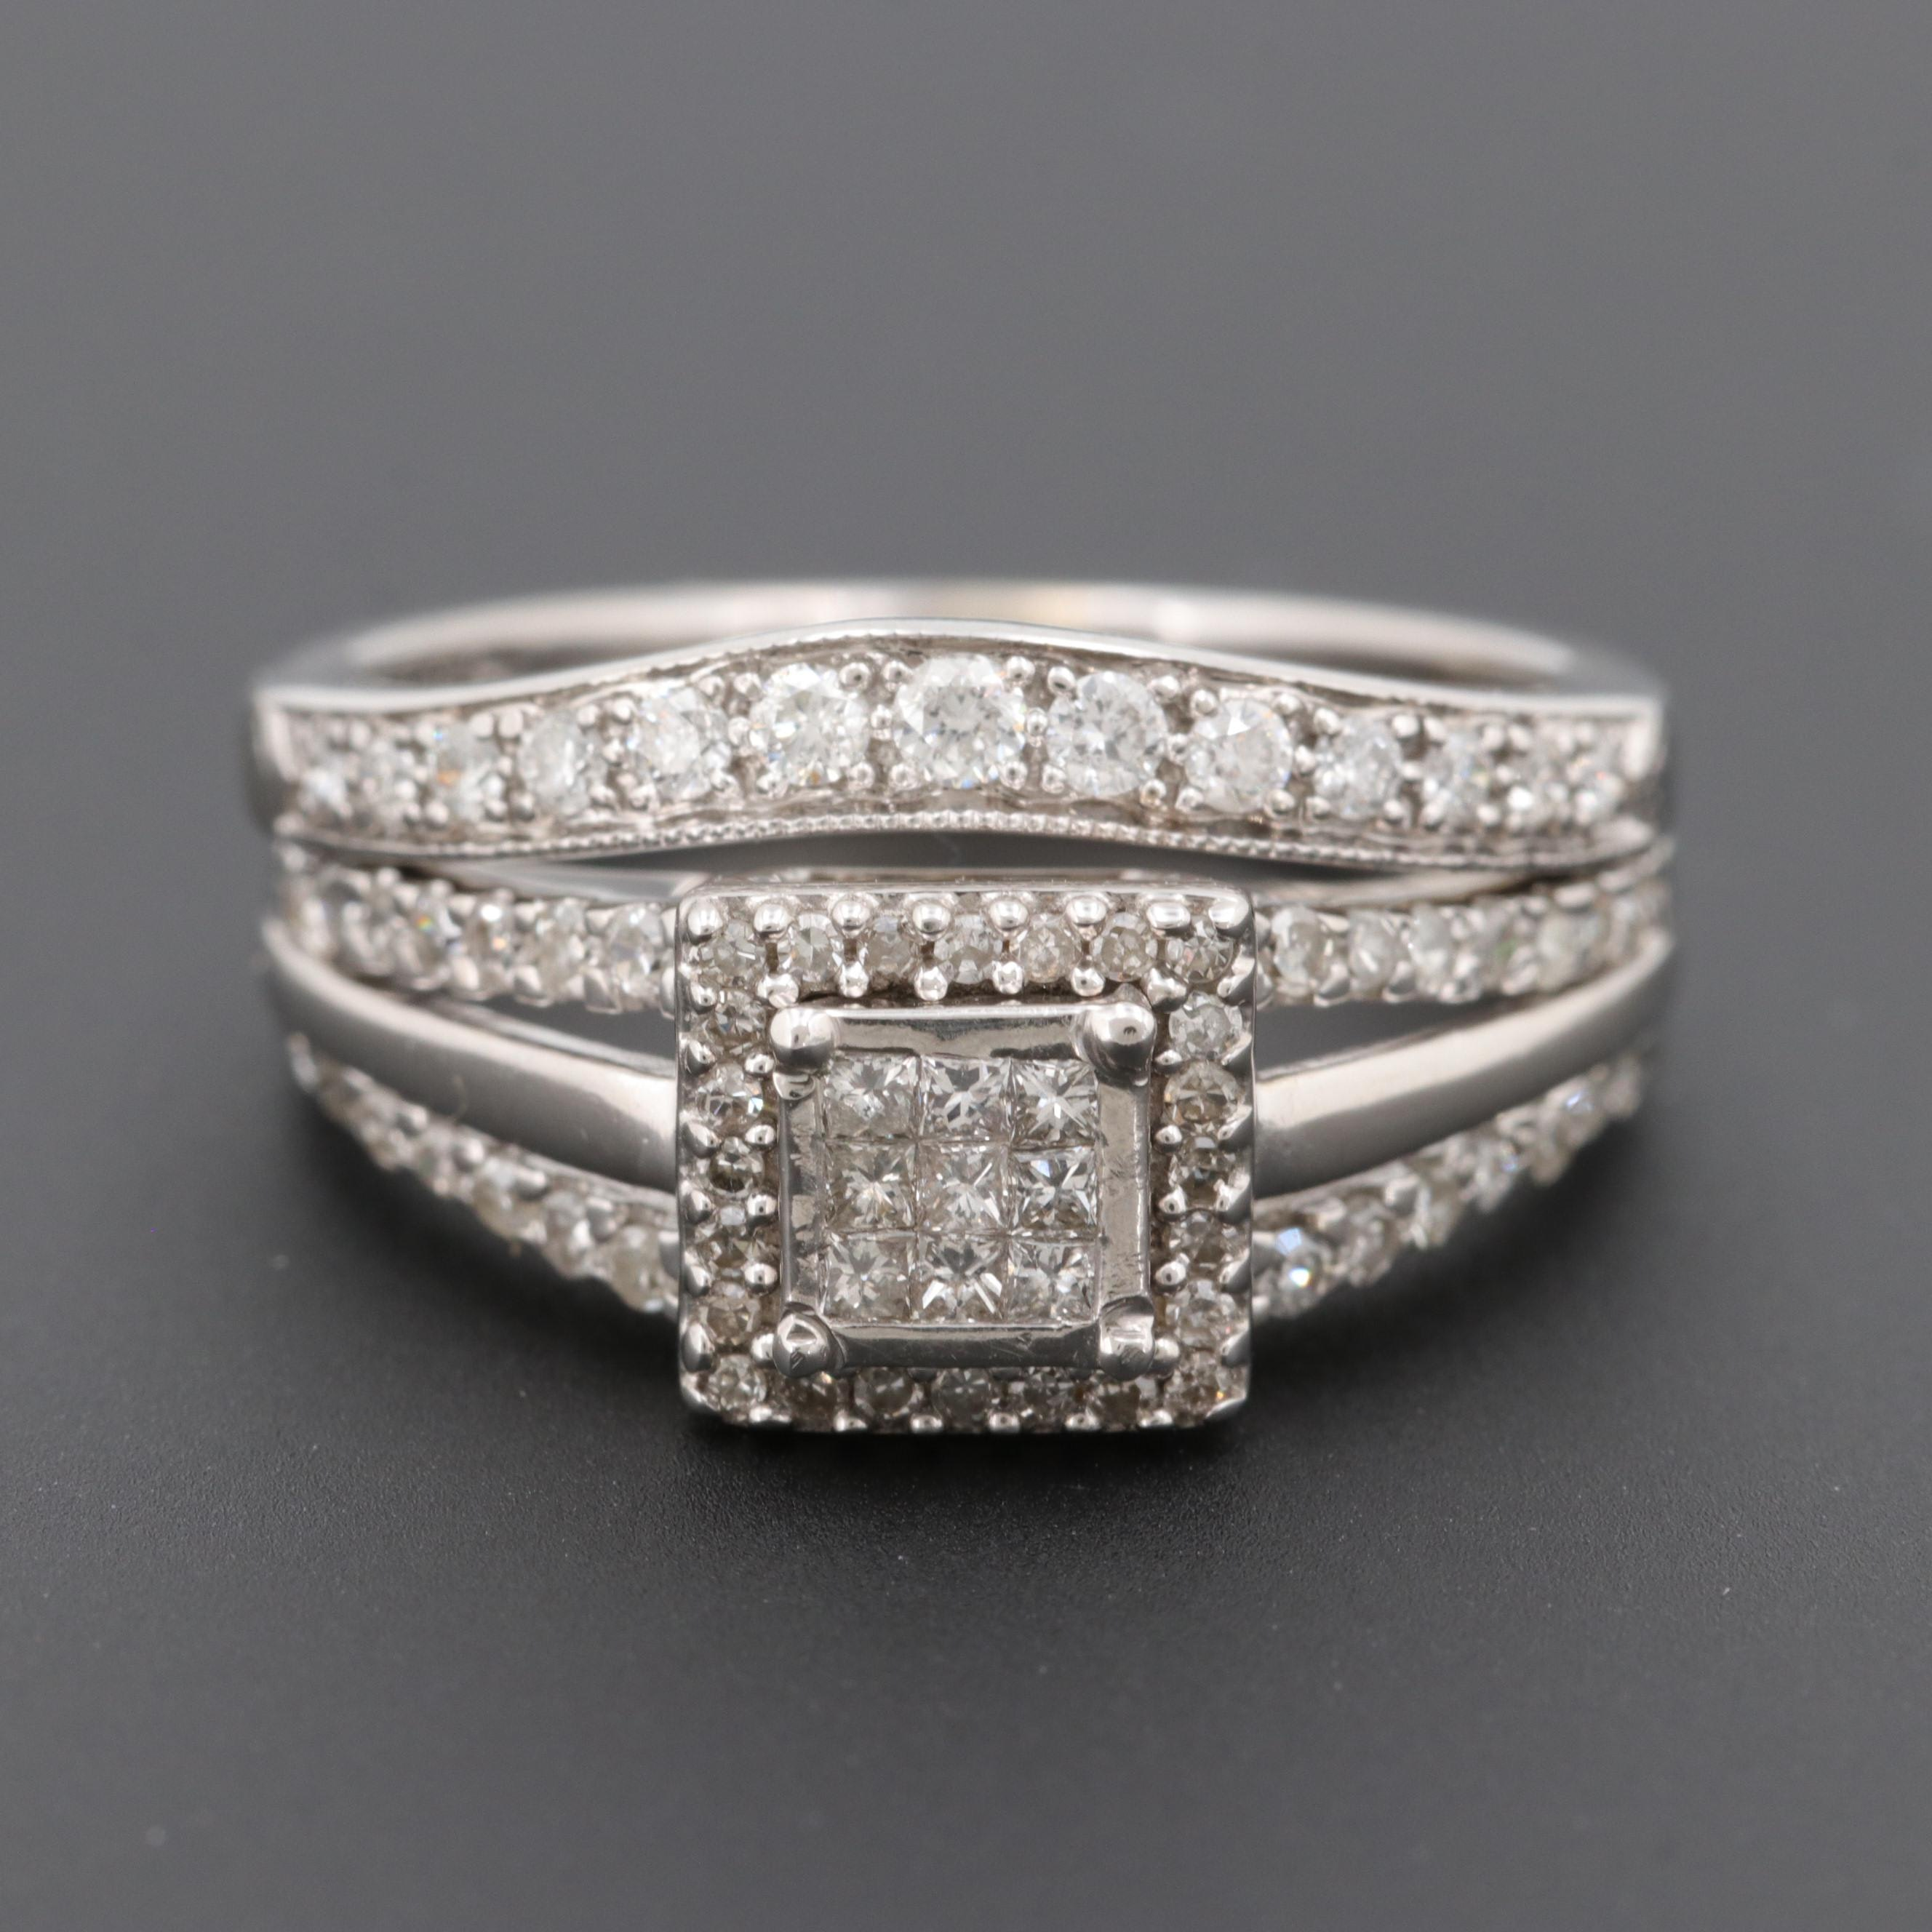 10K and 14K White Gold Diamond Ring